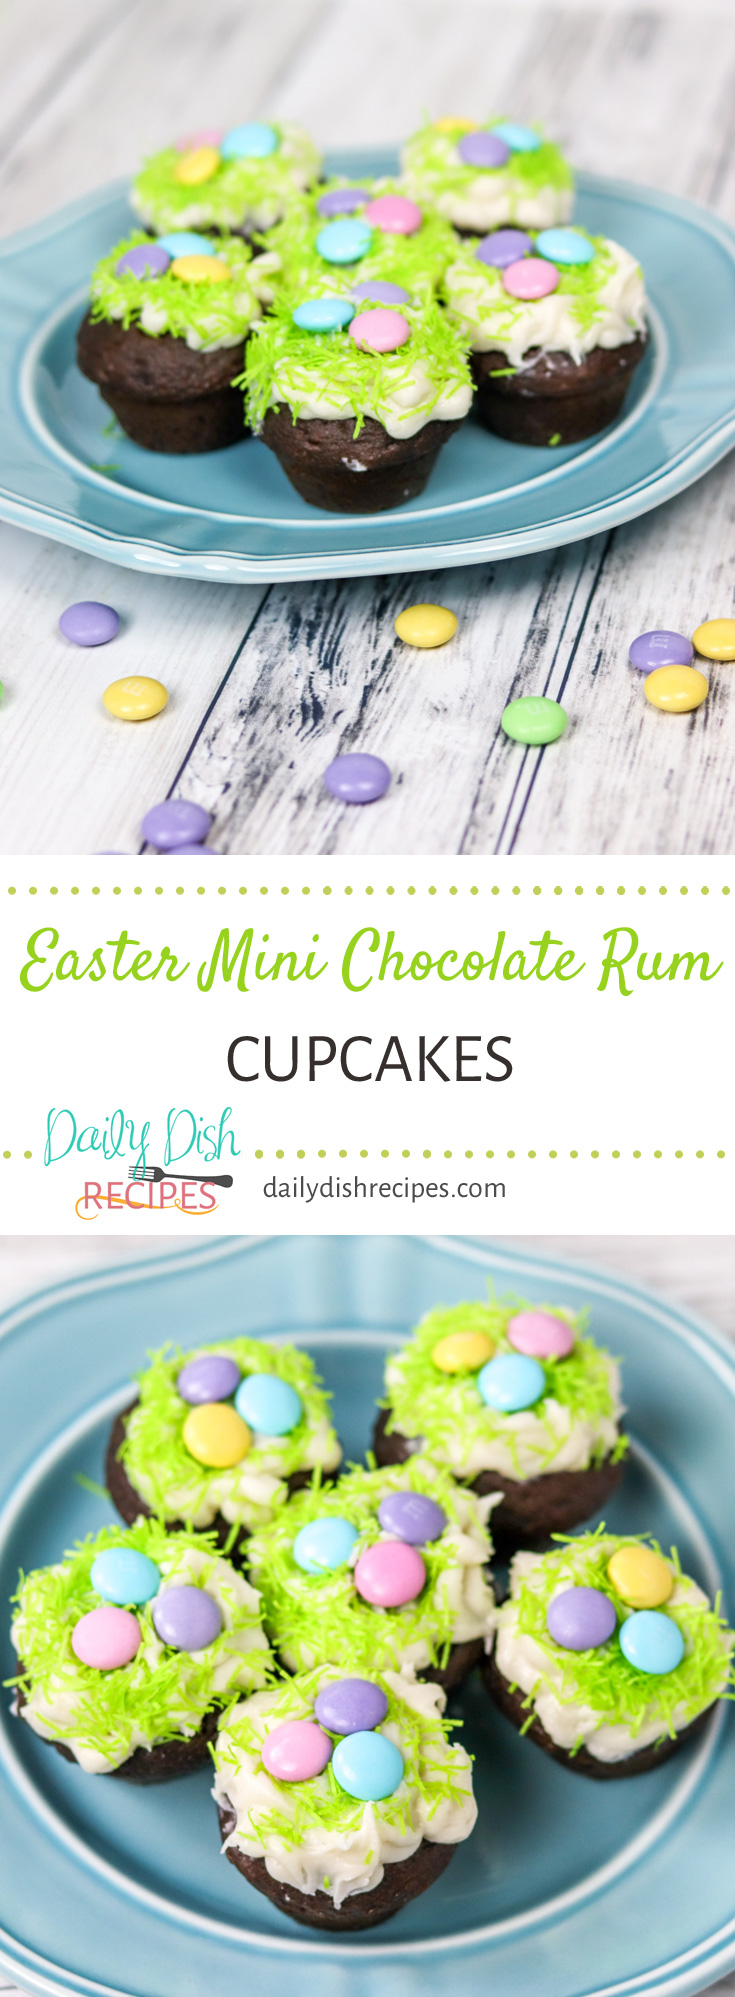 Moist, Rich, Rum-soaked chocolate mini cupcakes are a decadent addition to your Easter table. For these pictures, we also topped ours with a Butter Rum Frosting and decorated for Easter. They are incredibly easy and don't let the box mix fool you, you won't be able to tell. You will love these Chocolate Rum Cupcakes for Easter! #EasterWeek #EasterRecipes